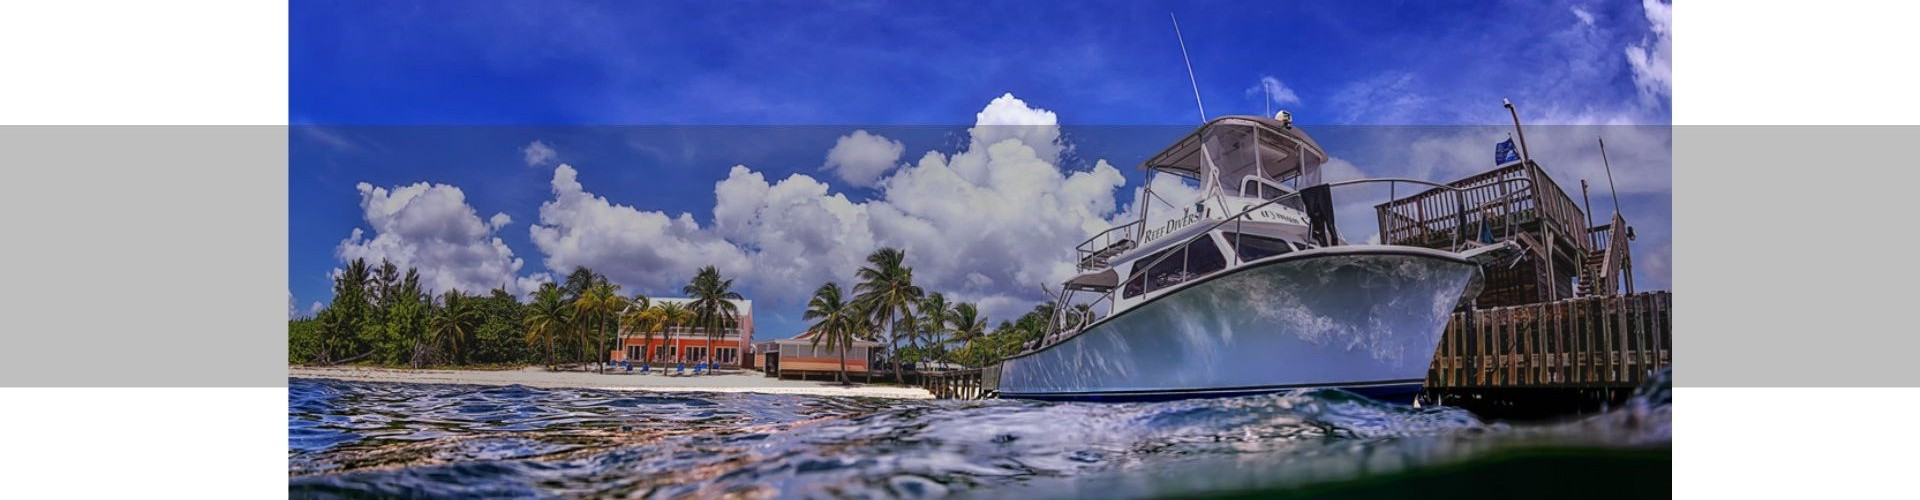 Little Cayman 1